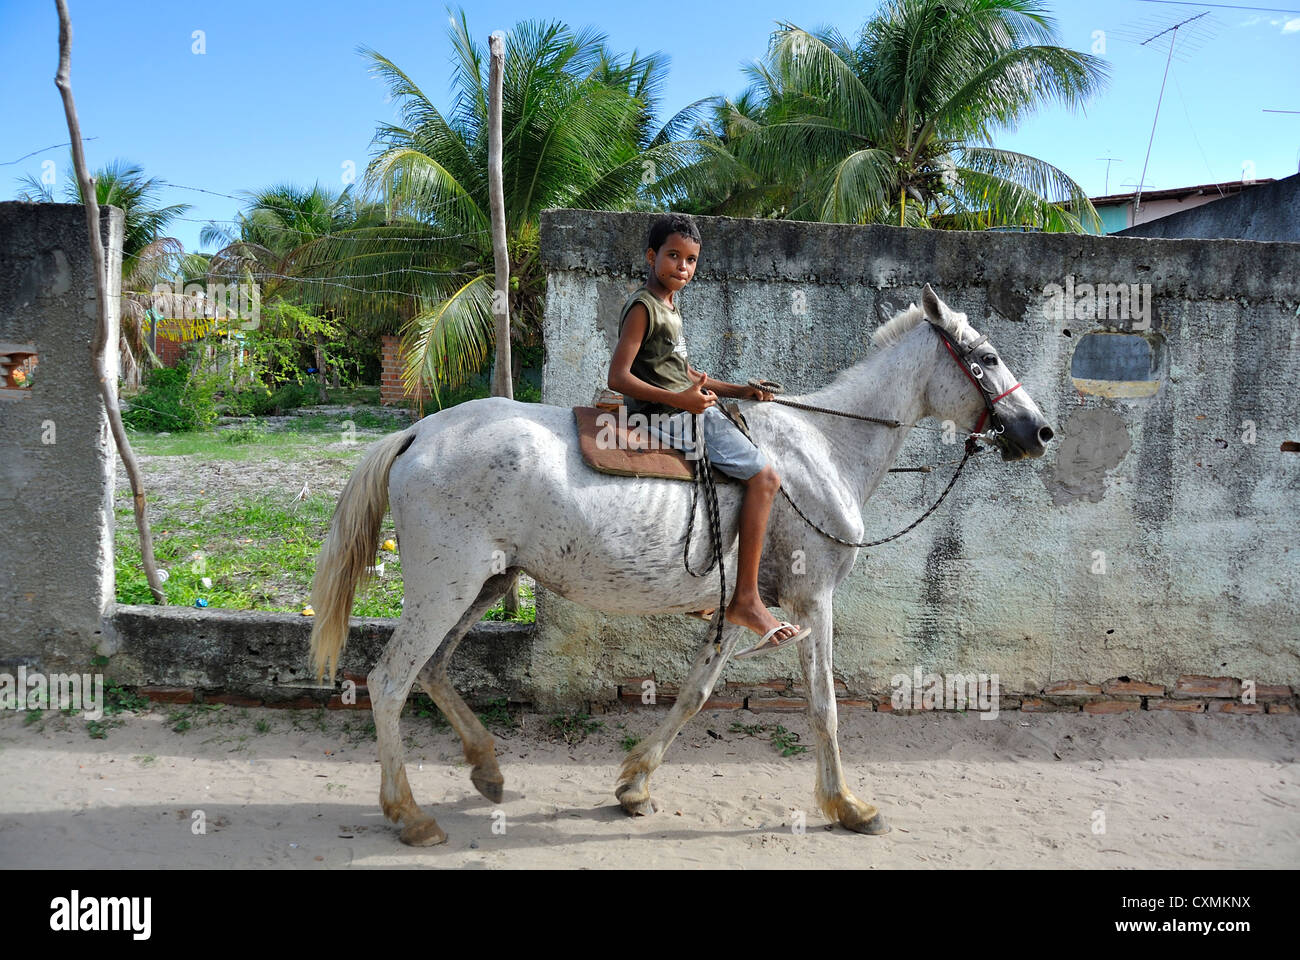 Morro de Sao Paulo, Bahia, Brazil, South America, Brazilian boy riding on a horse Stock Photo